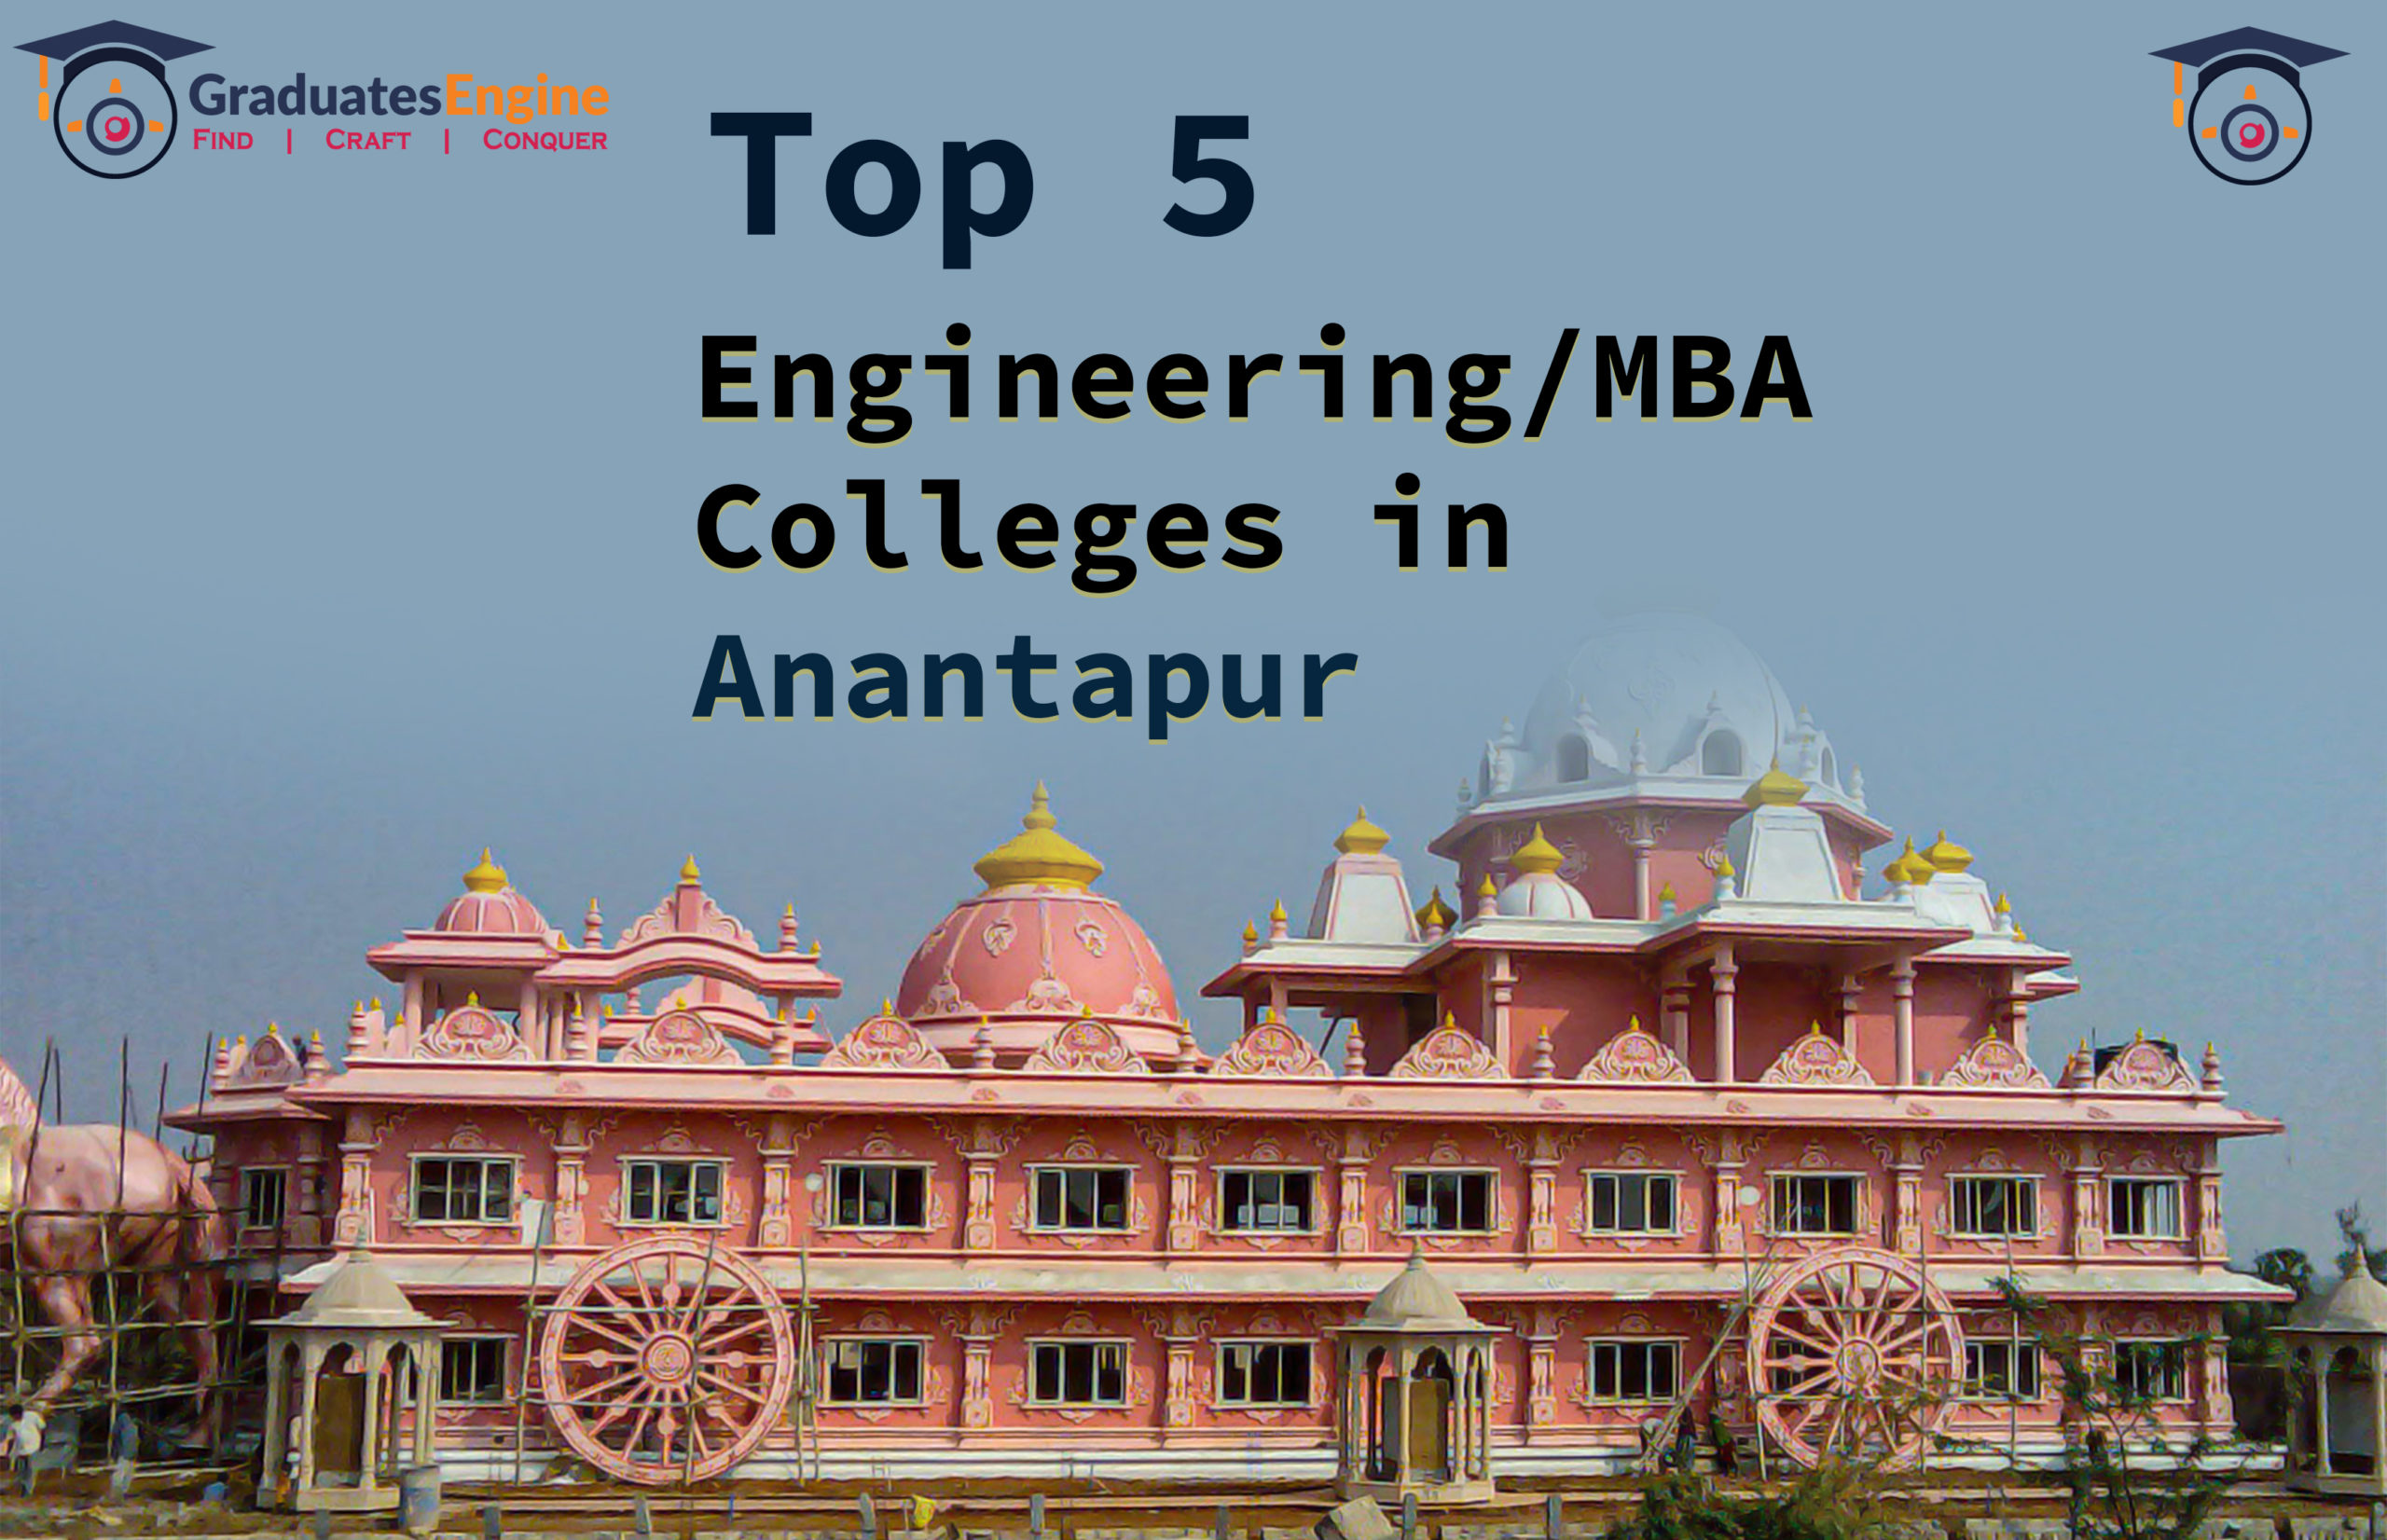 Top 5 Engineering/MBA colleges in Anantapur